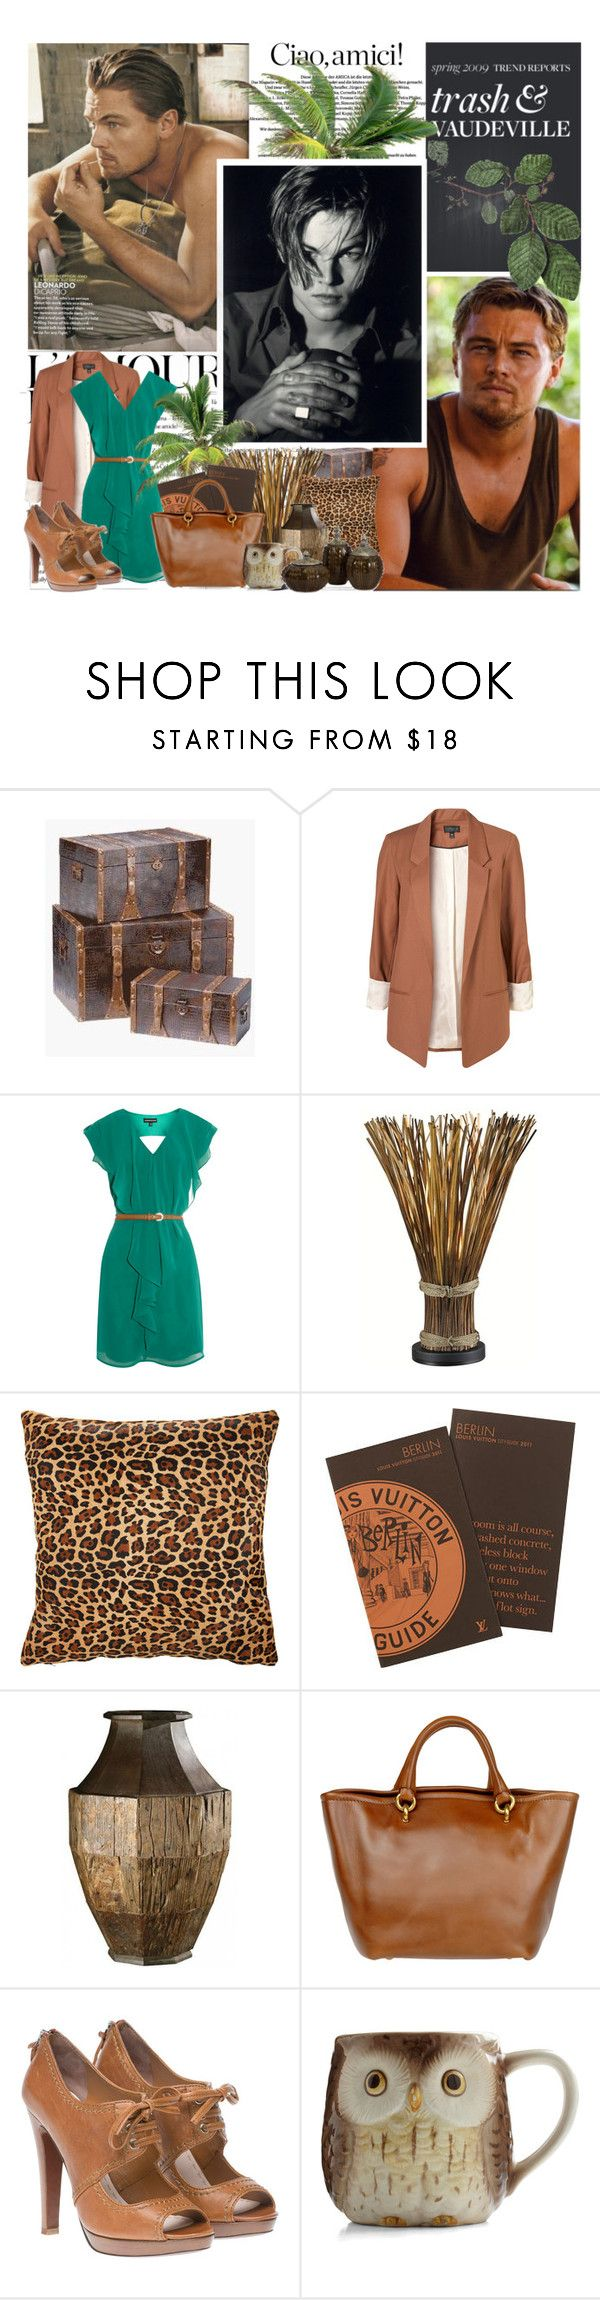 """""""From Boy to Man"""" by xkathrynxo ❤ liked on Polyvore featuring Warehouse, Barneys New York, Louis Vuitton, Vanessa Bruno, Miu Miu, leonardo dicaprio, hot, celebrity, jungle and brown"""